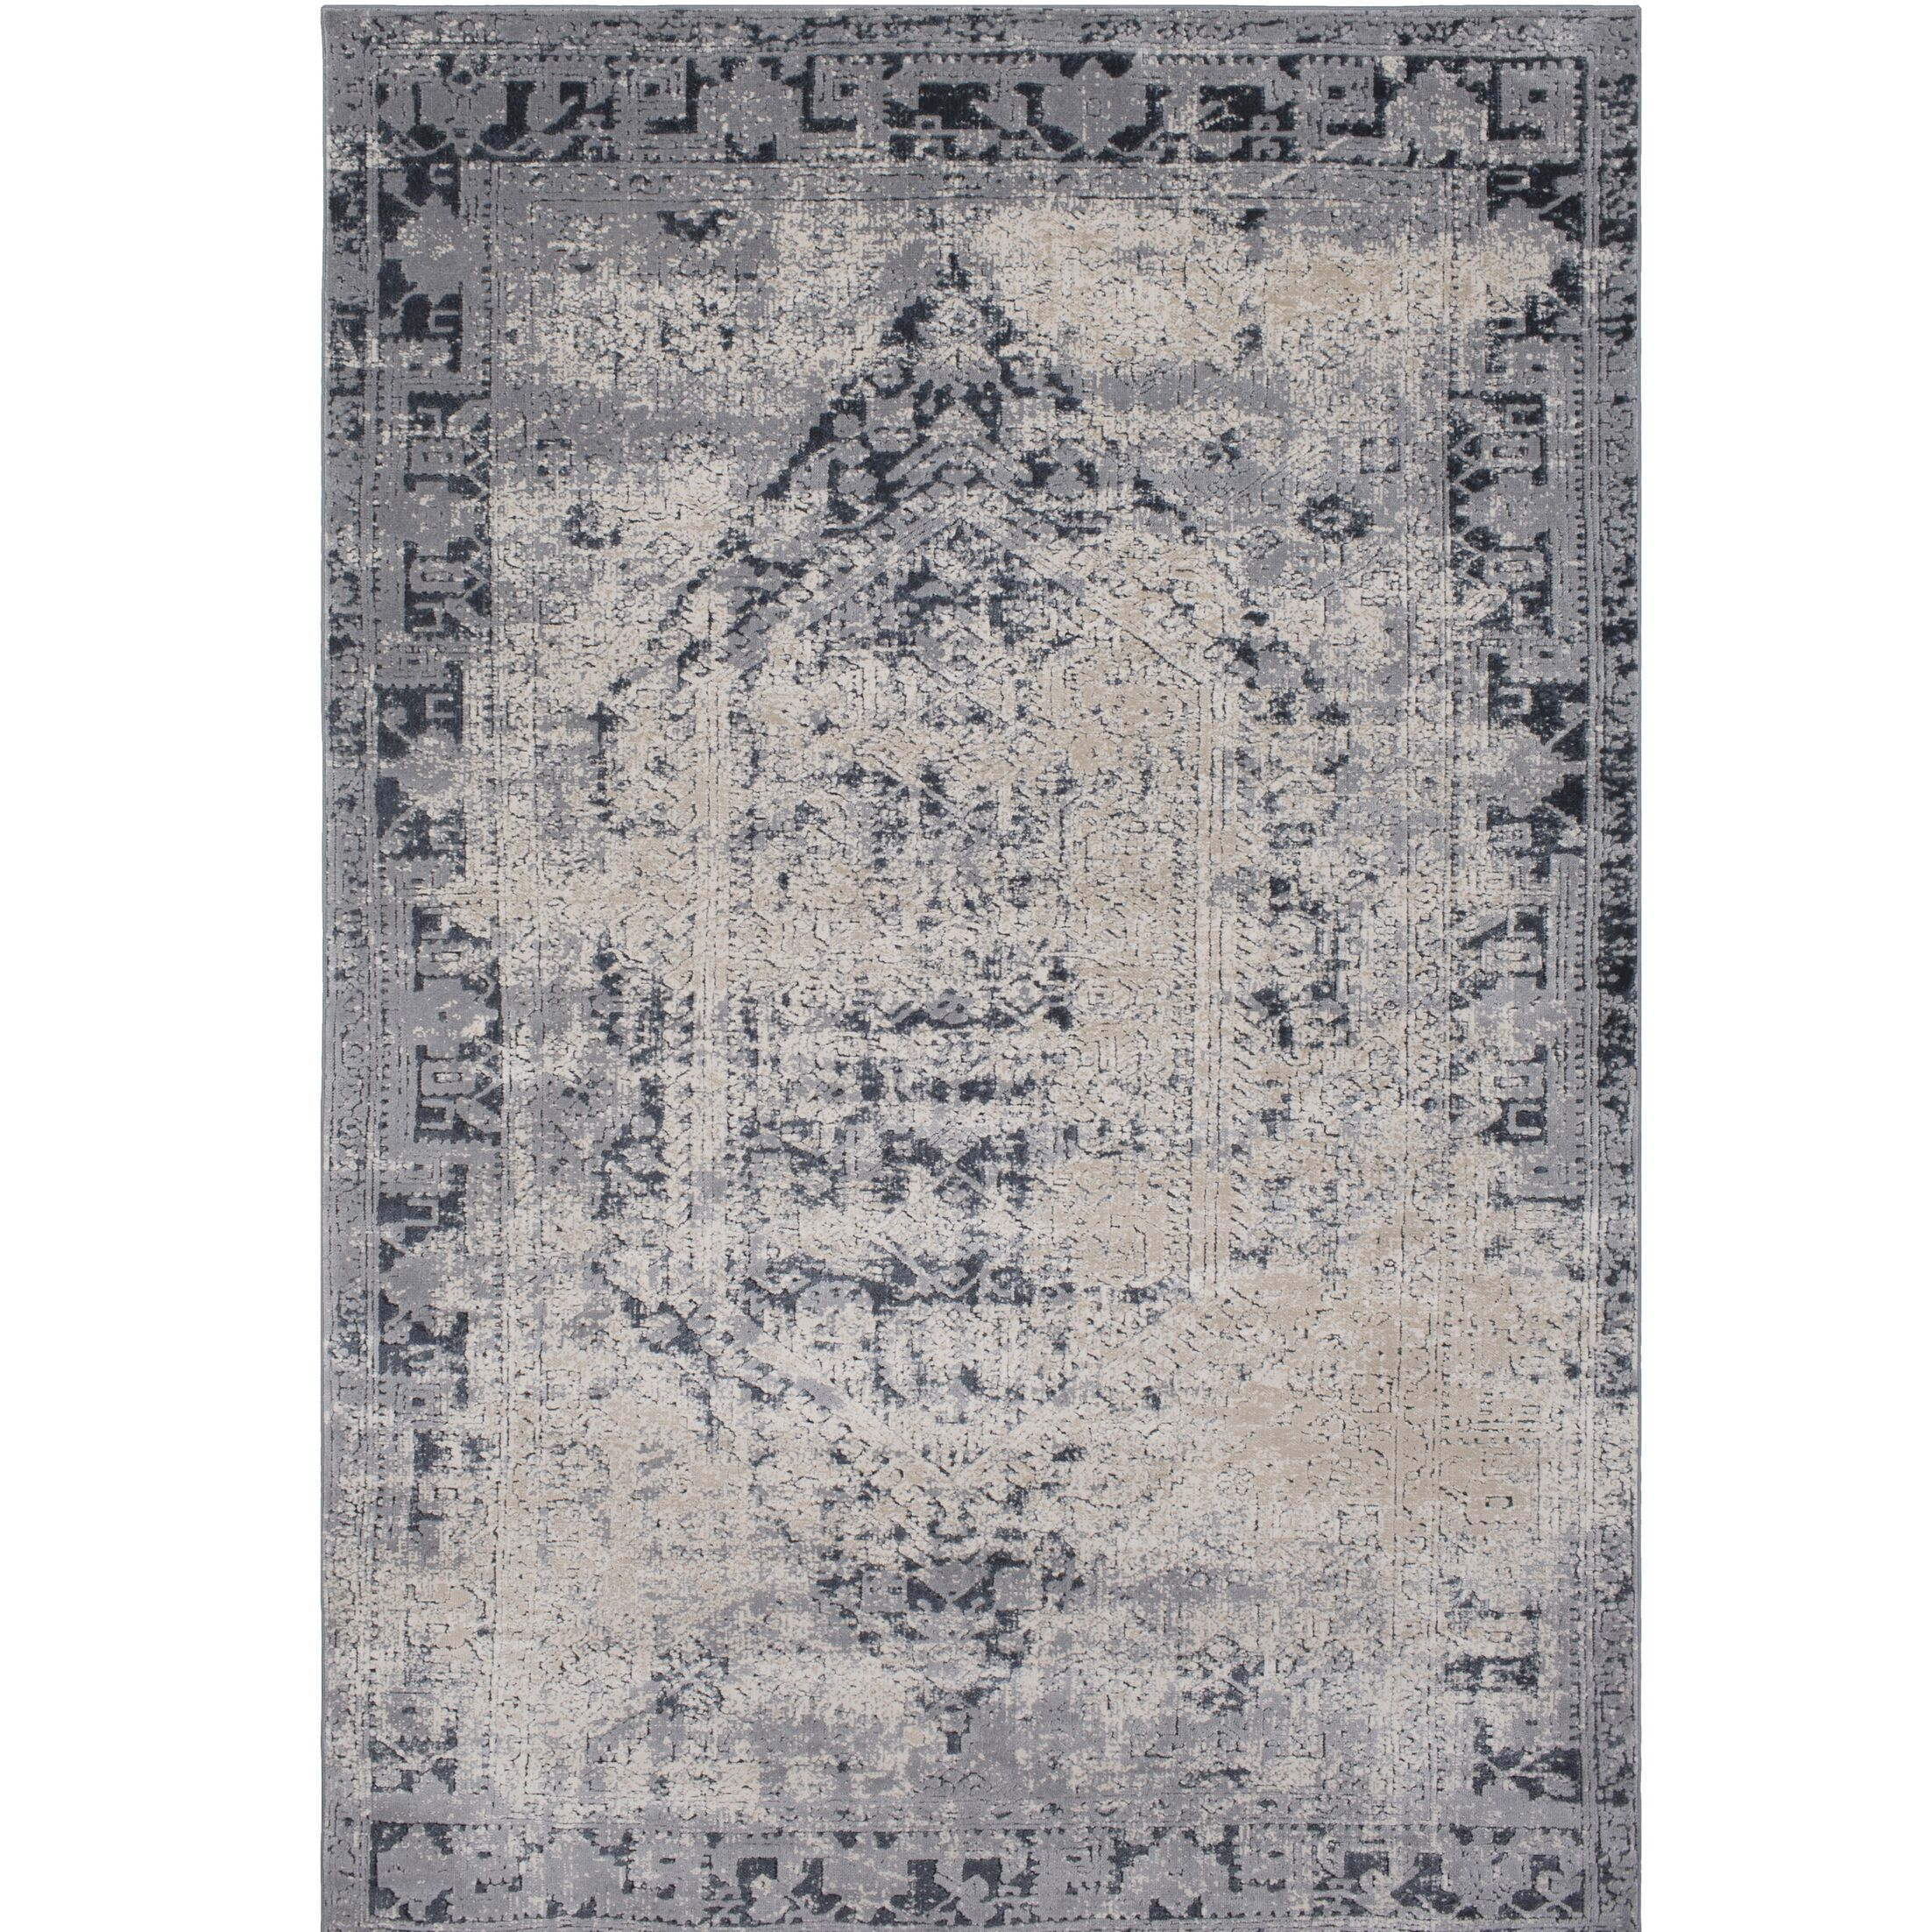 Hummell Rectangle Gray Area Rug Rug Size: Rectangle 6'7